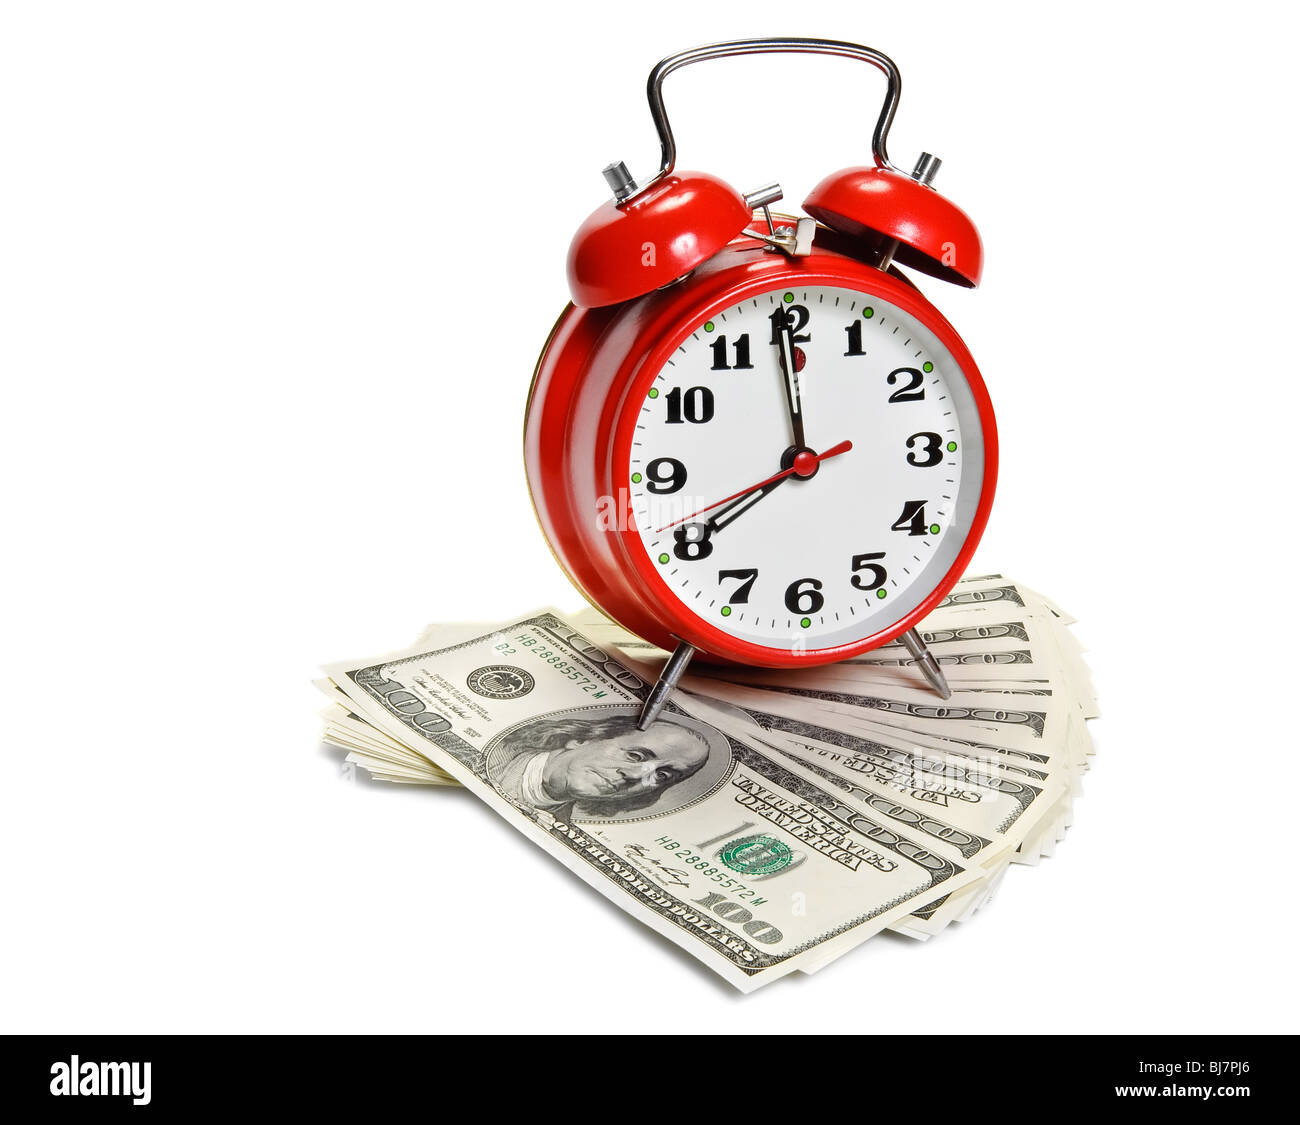 'Time is money' concept - classic alarm clock over dollars - Stock Image